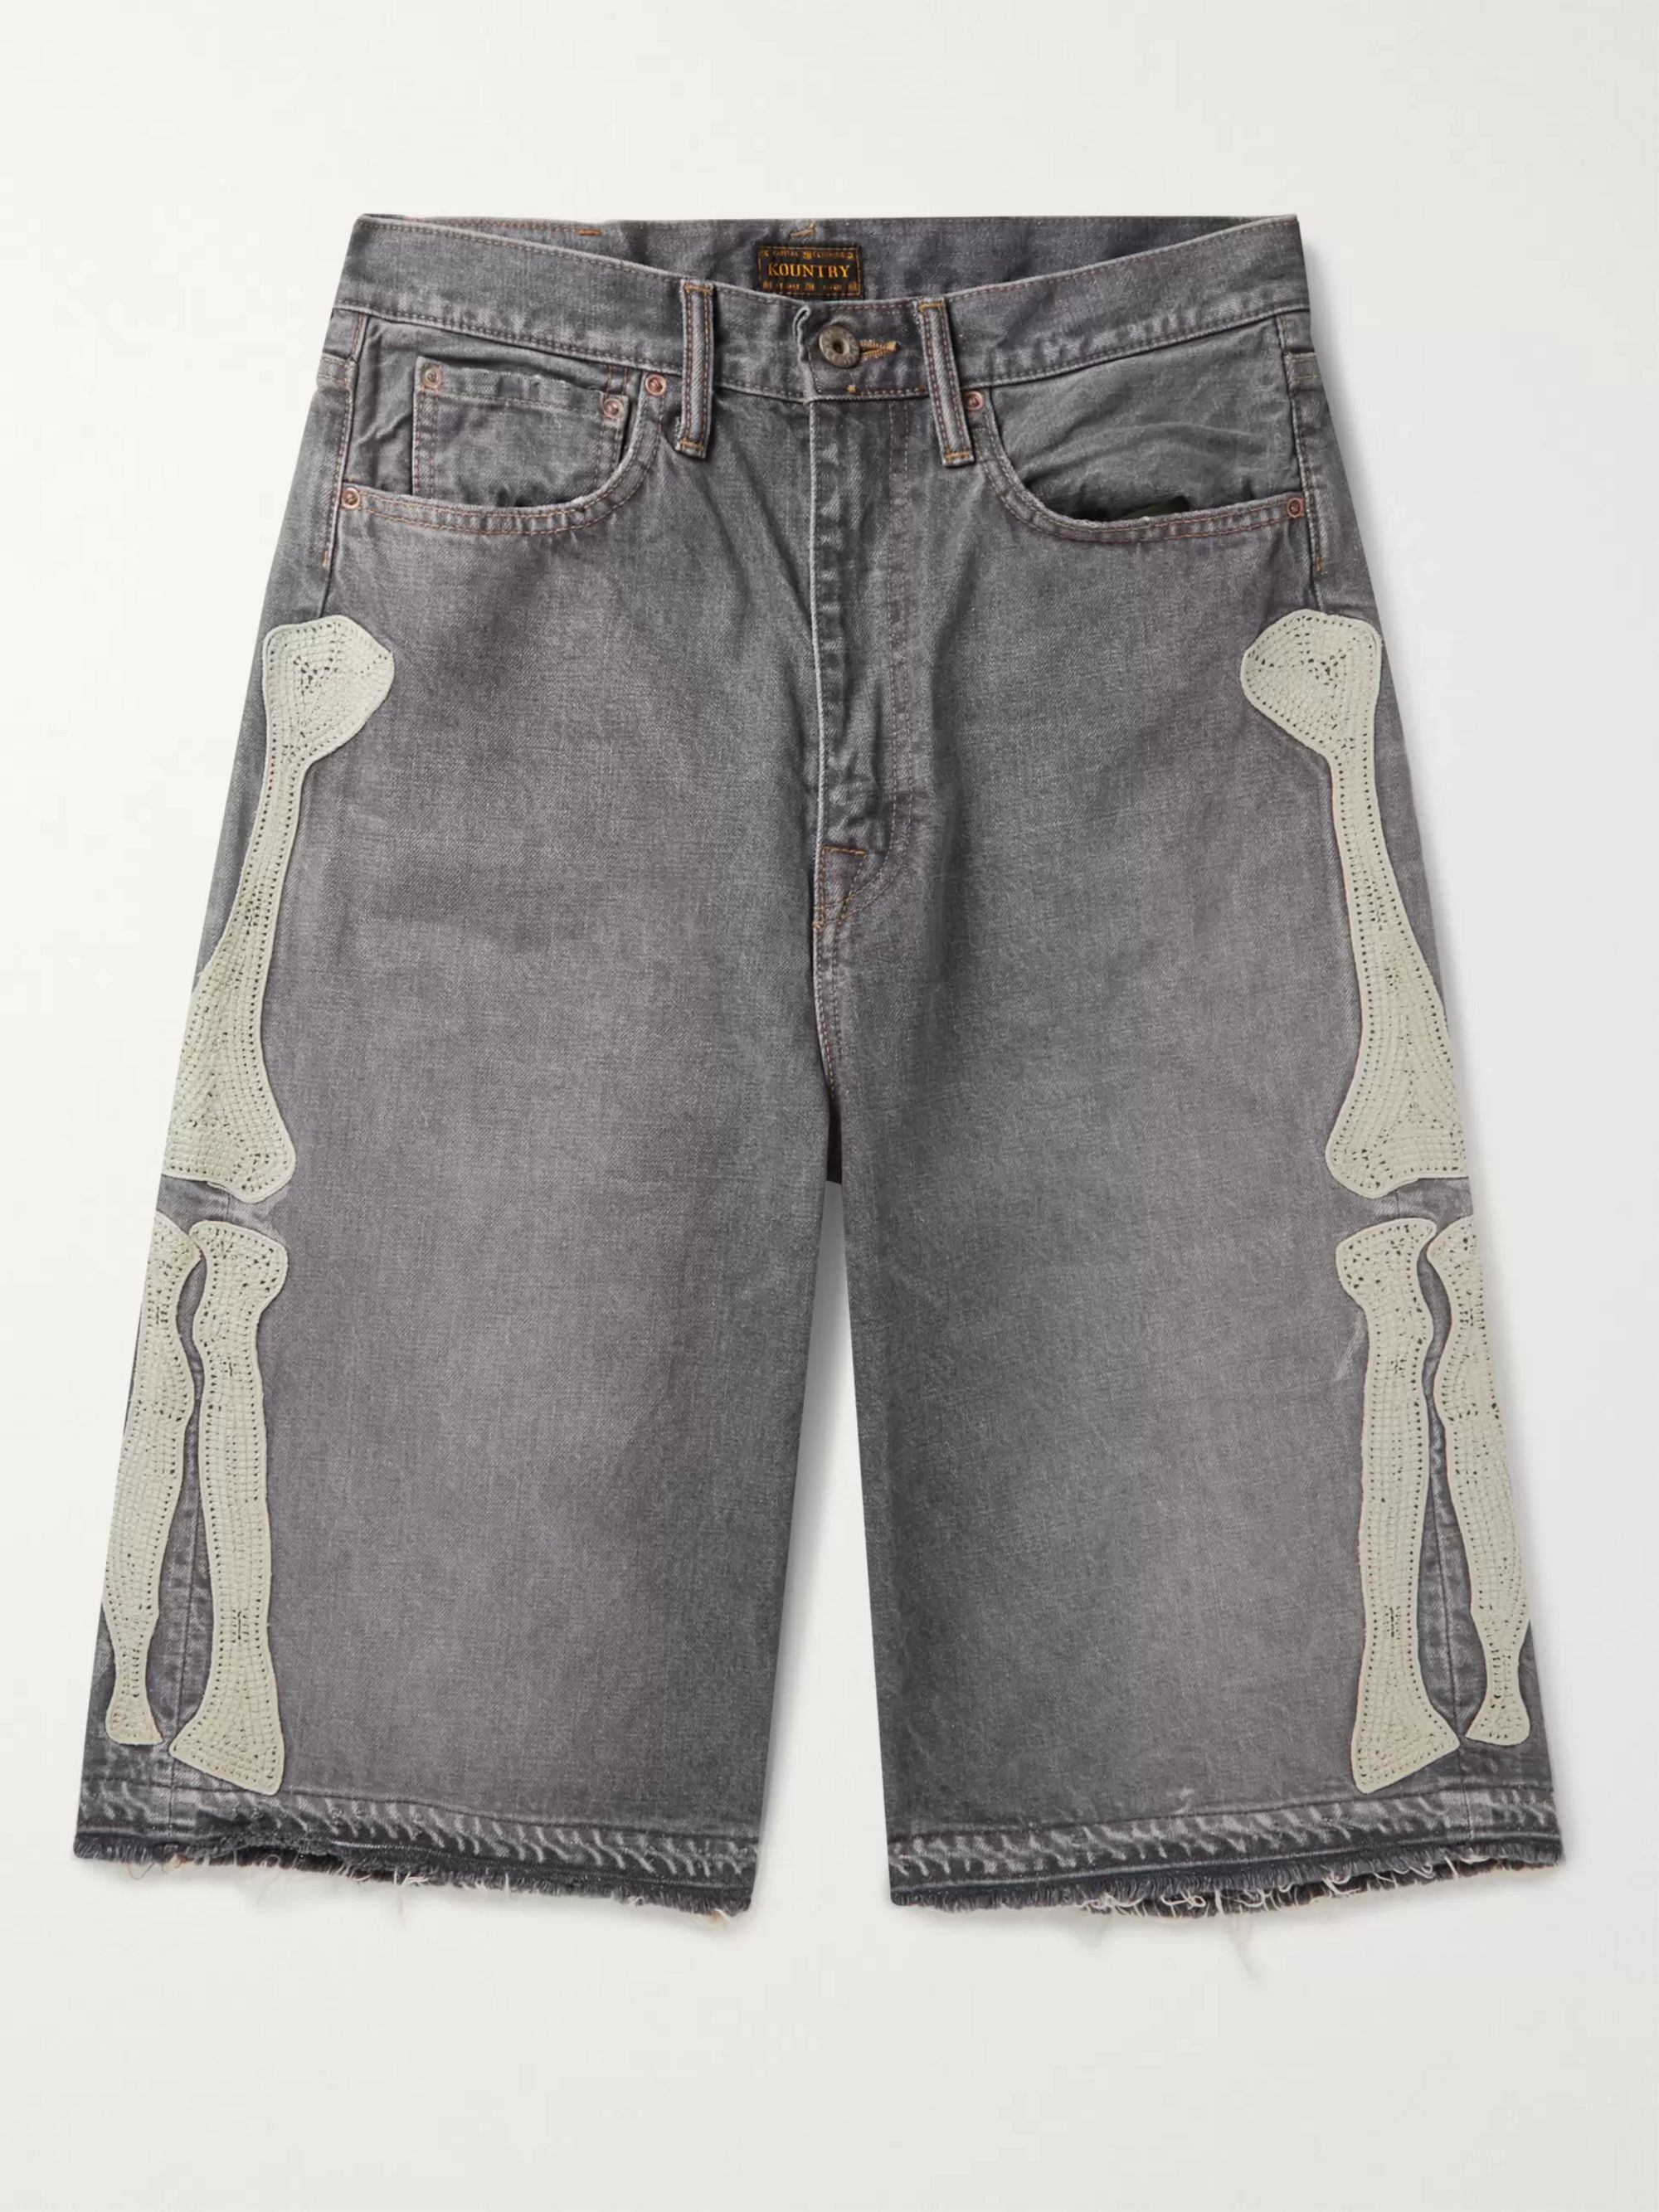 KAPITAL Distressed Appliquéd Denim Shorts